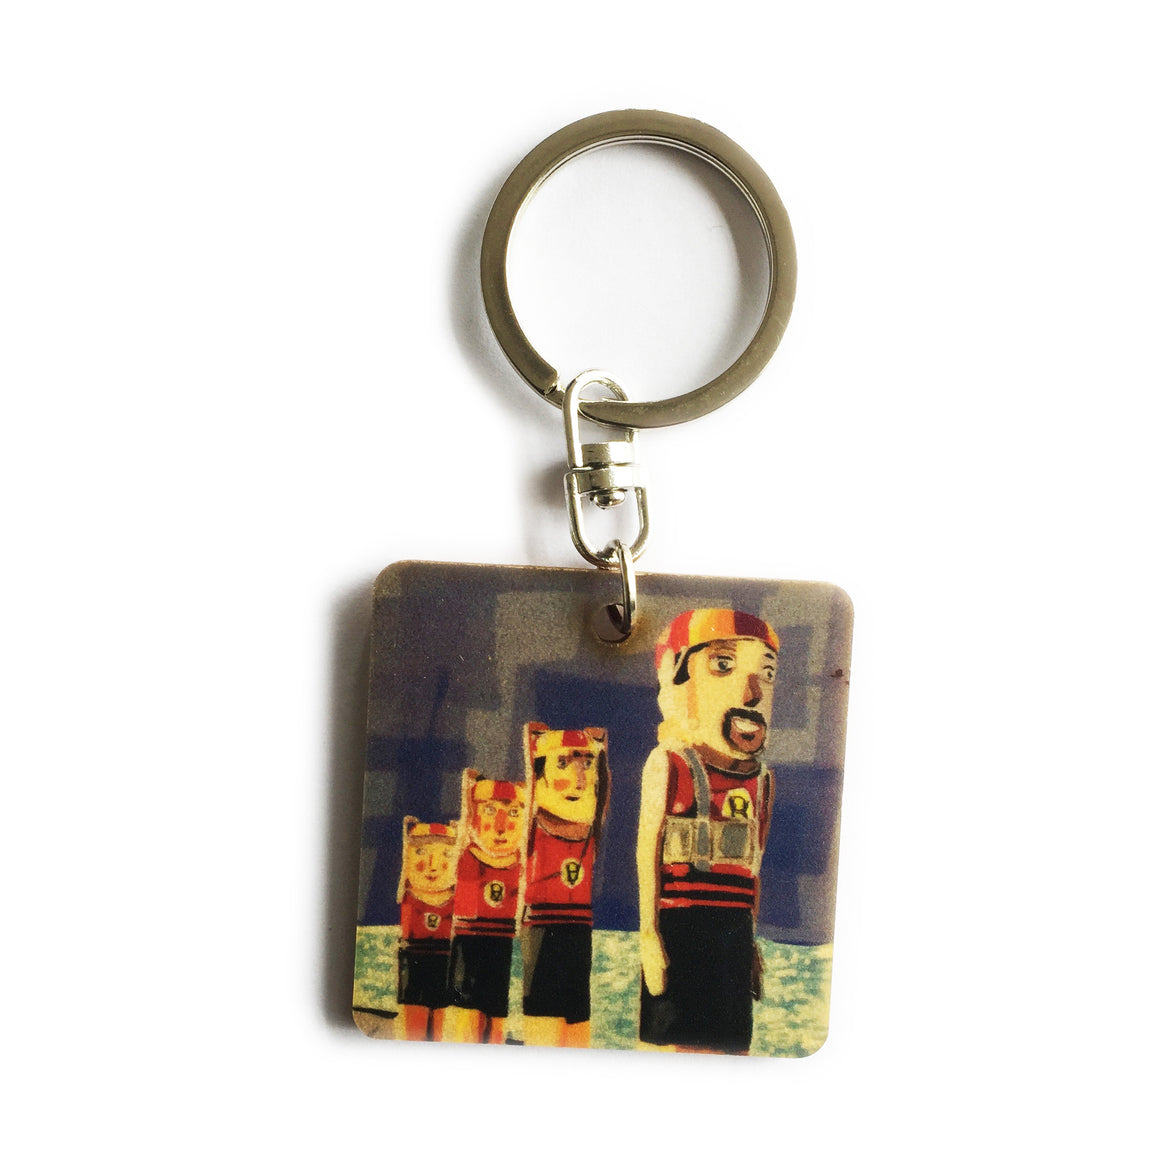 Keyring - Timber keyring with Beach Bollards print